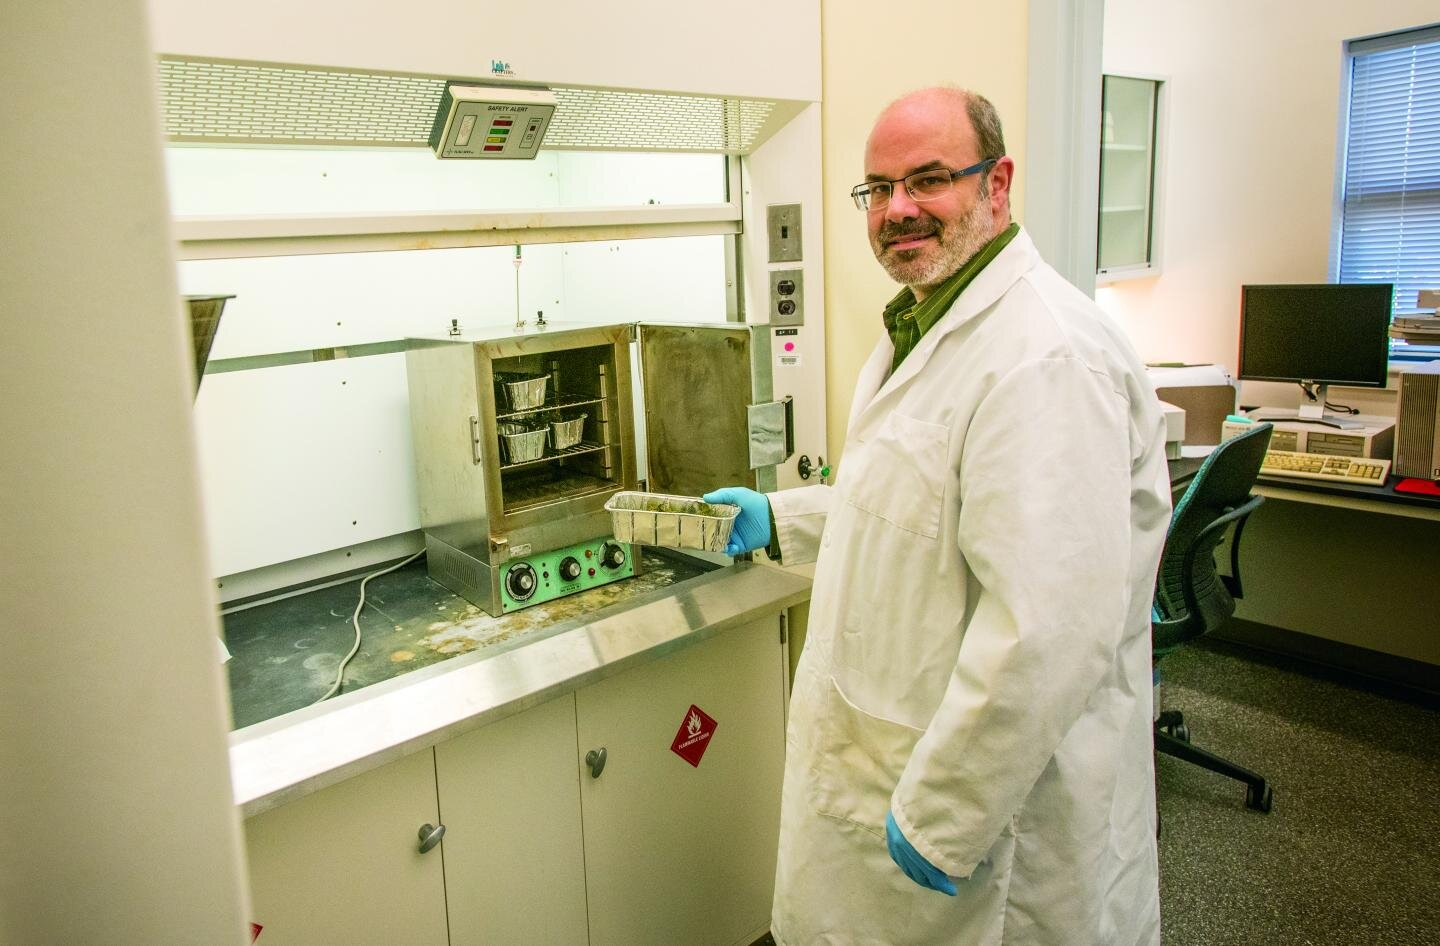 Hemp testing lab launched in response to industry need - Phys.Org